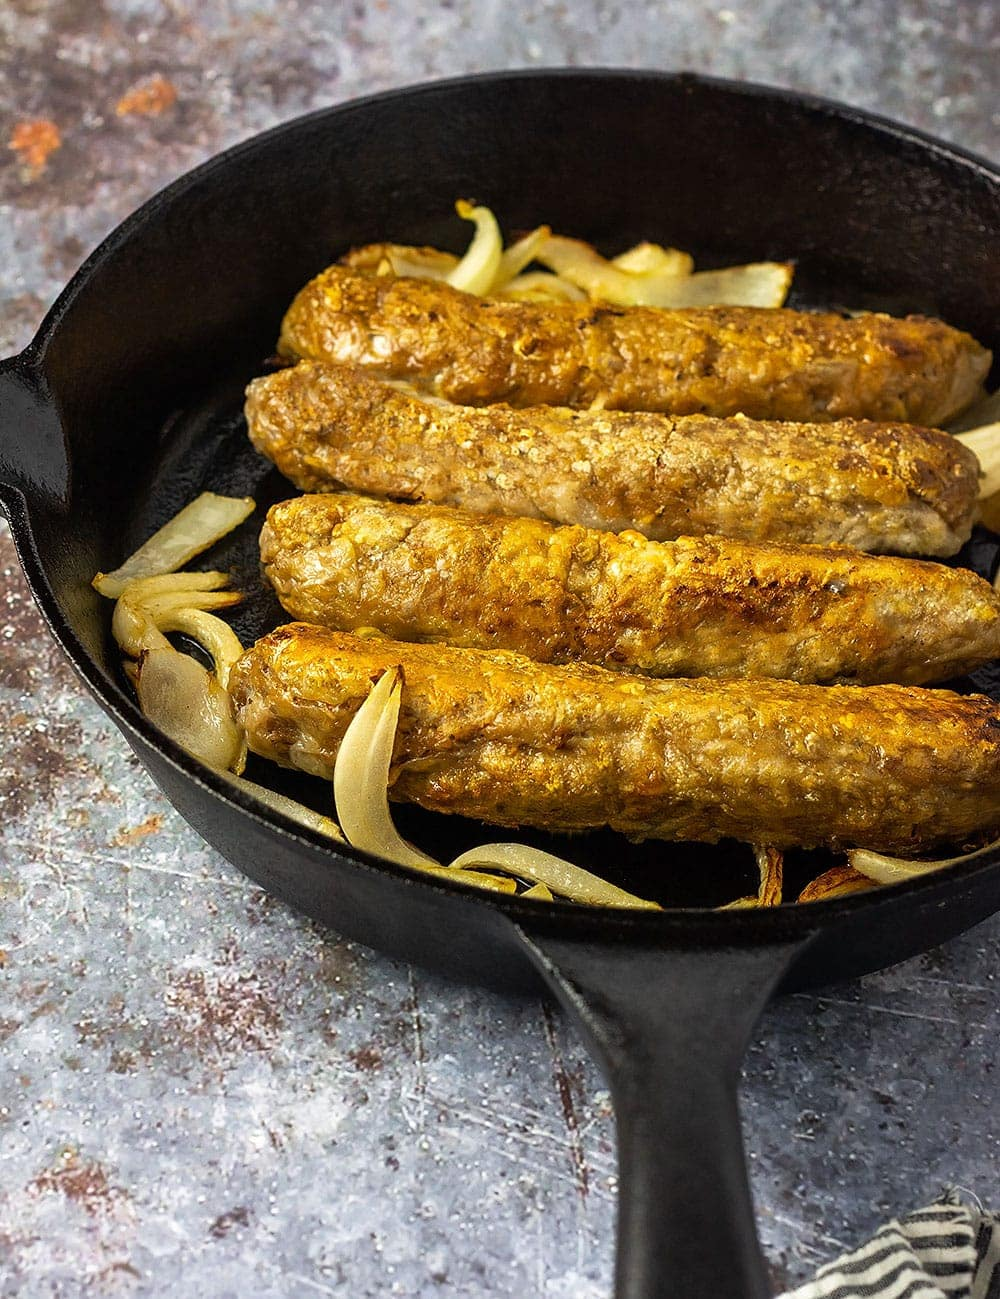 Vegan and gluten-free sausage in skillet with sauteed onions on a marbled background